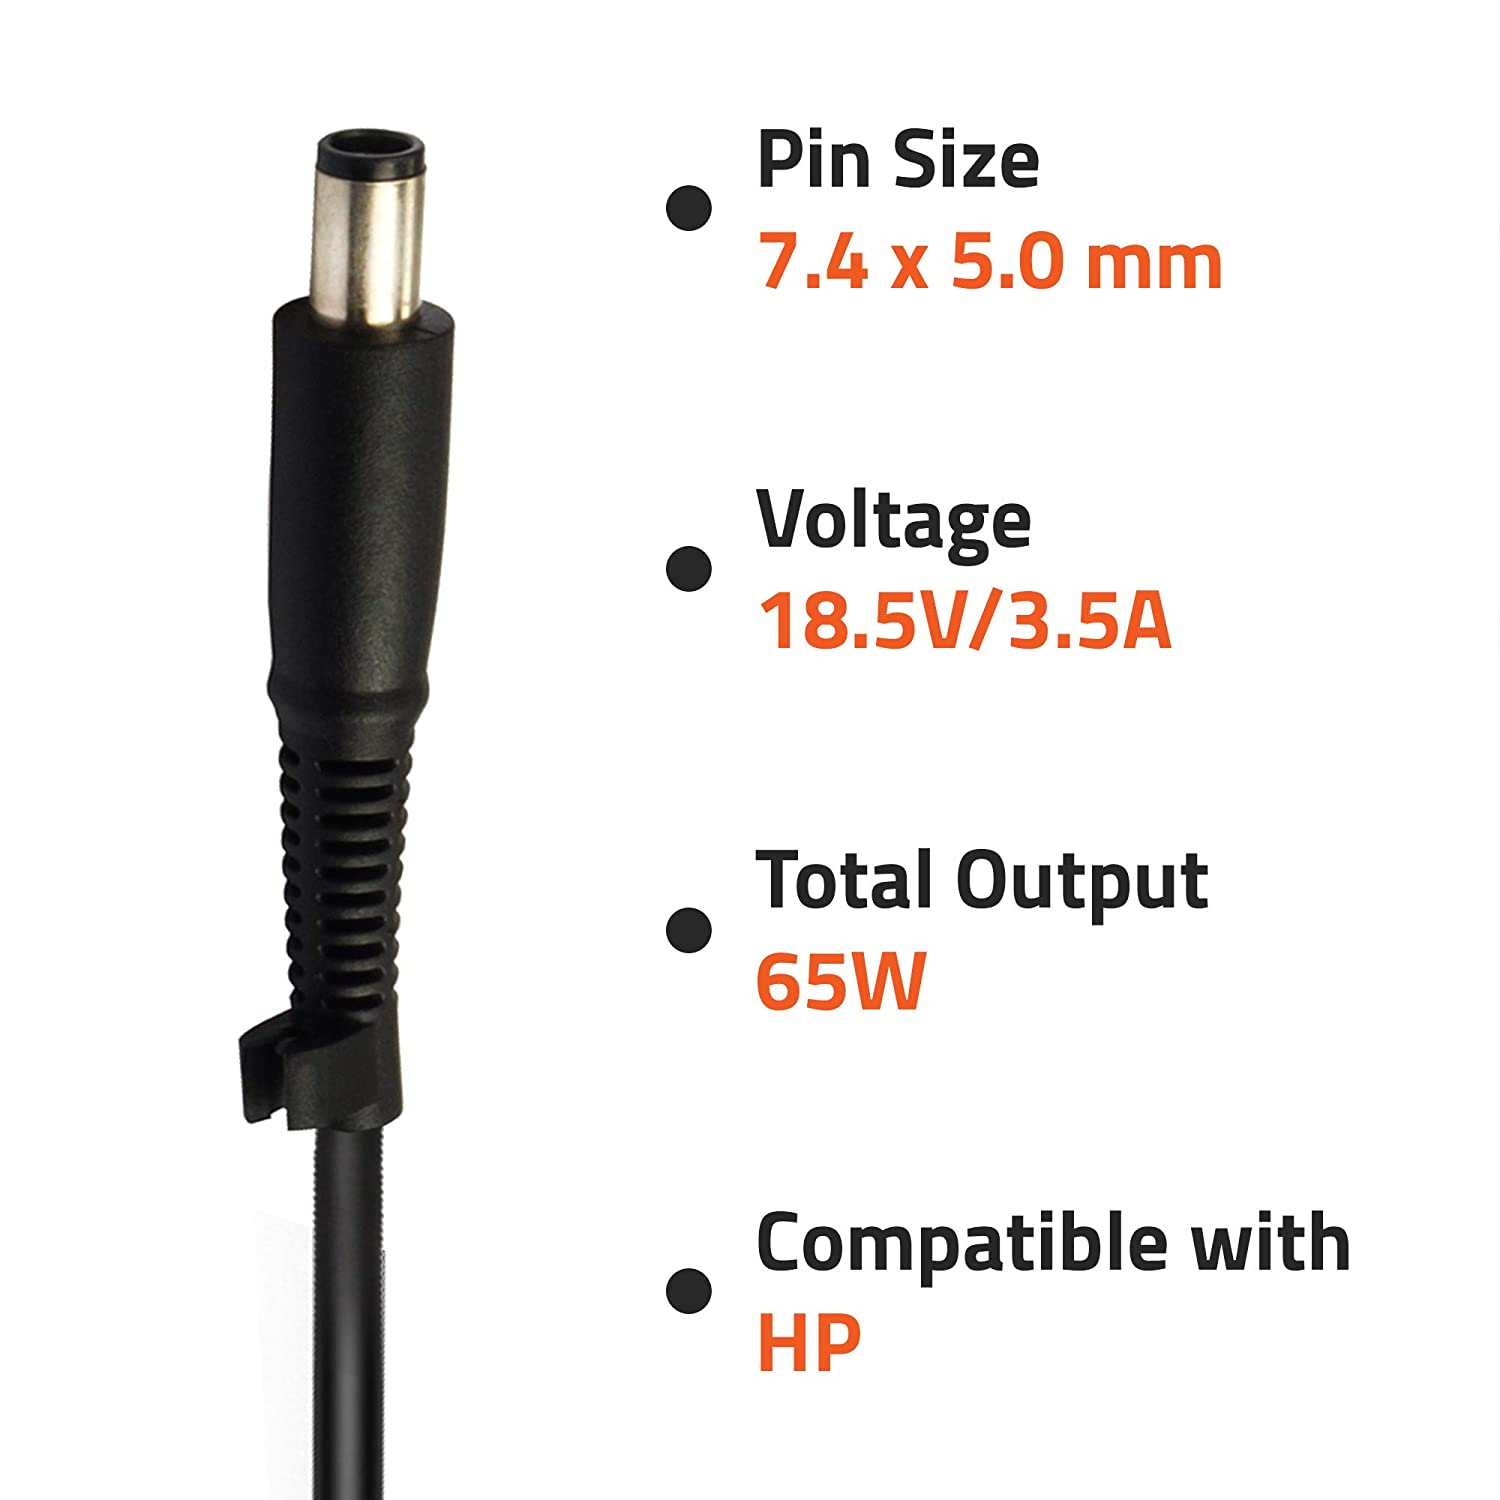 Artis AR0505 65Watt Laptop Charger/Adapter With Power Cord Compatible With HP Laptops (18.5V/3.5A, 65Watt) (Pin Size: 7.4mm X 5.0mm) (BIS Certified)